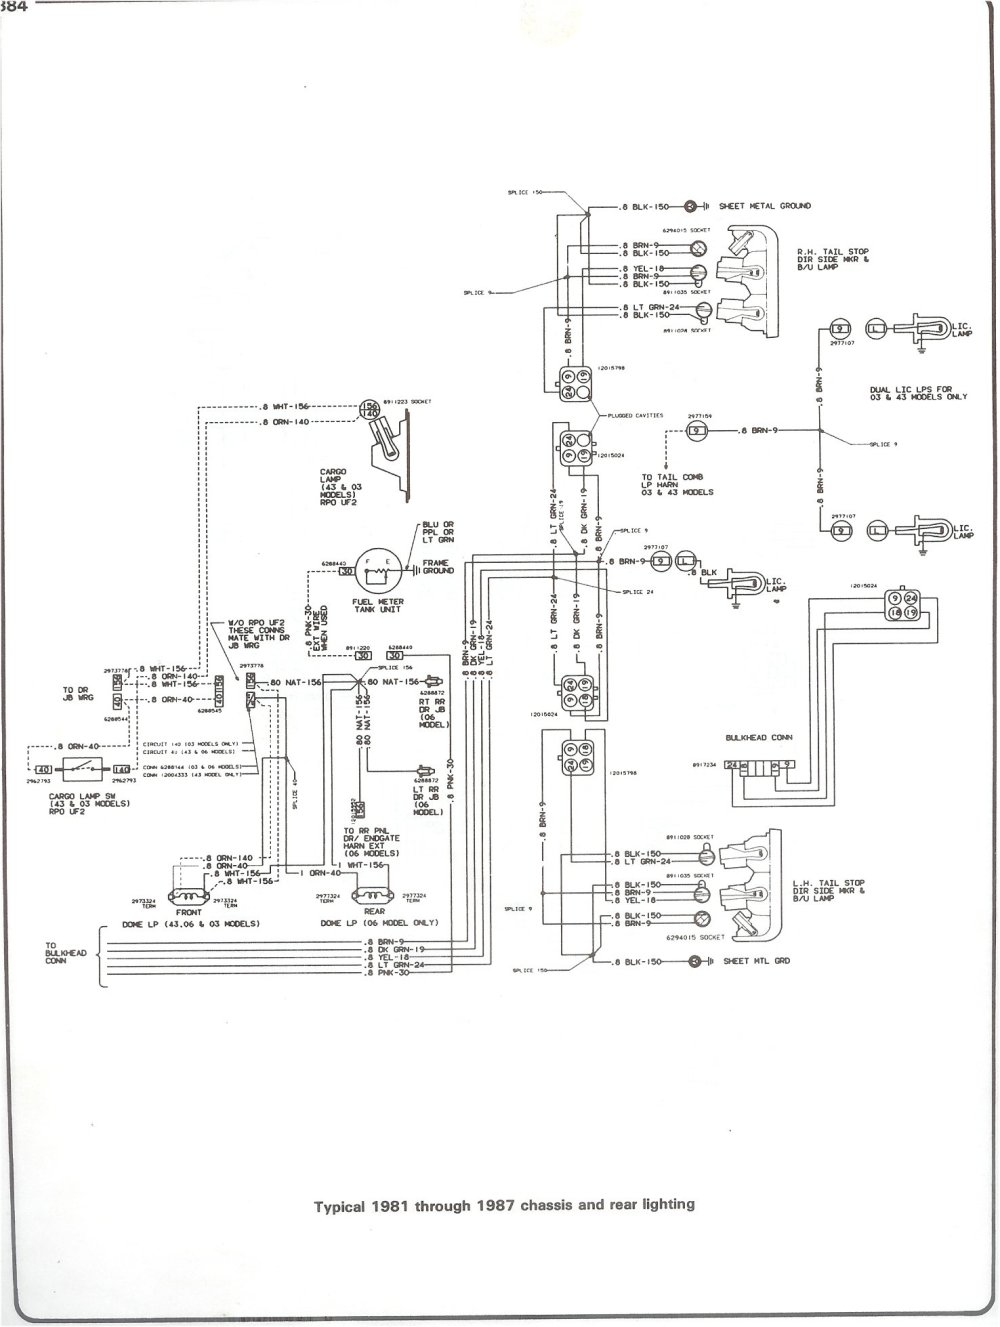 medium resolution of caterpillar radio wiring diagram wiring library caterpillar radio wiring